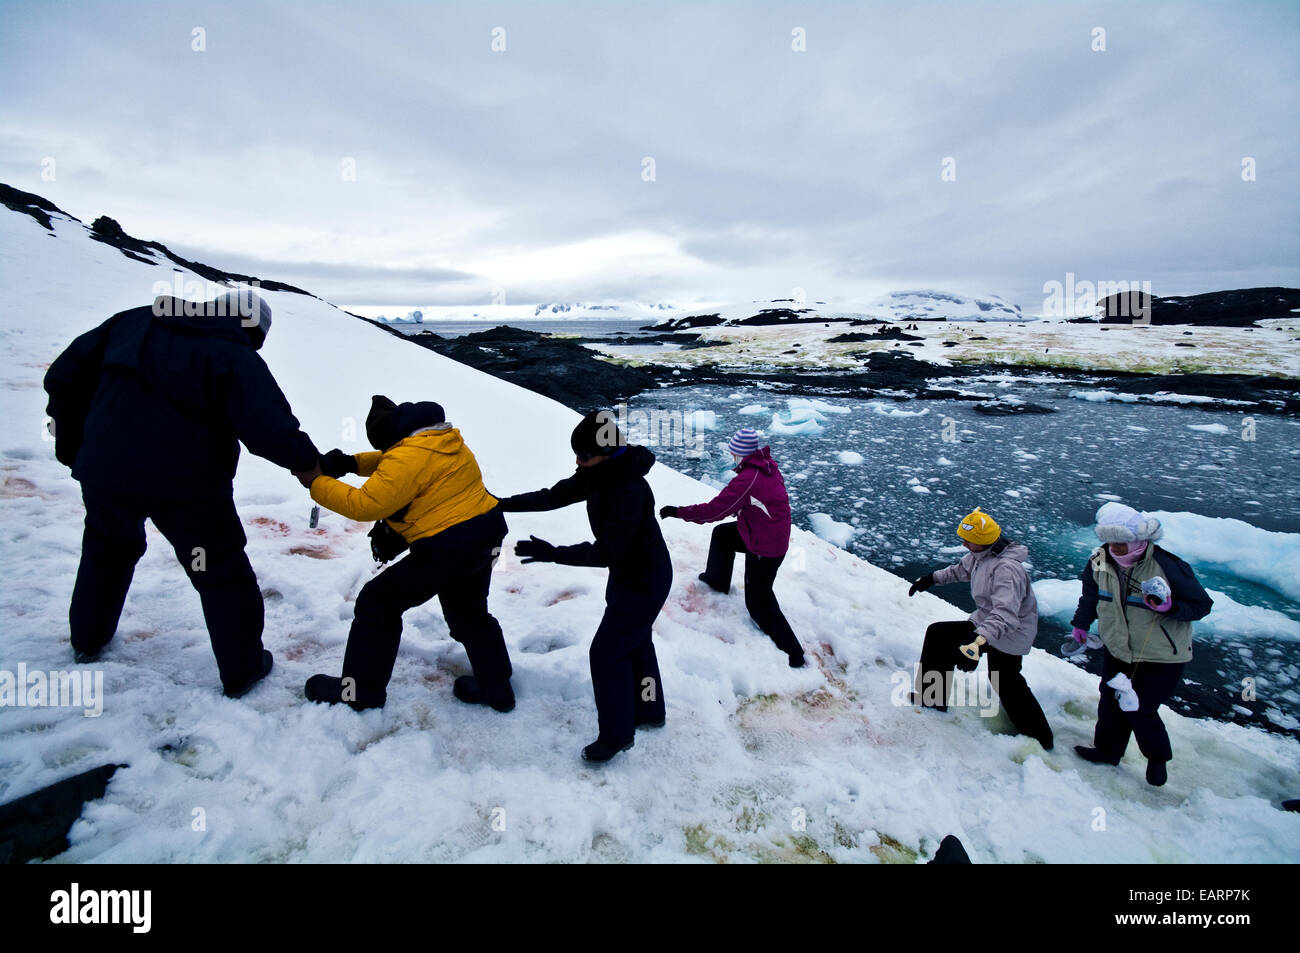 Tourists help each other clamber up a snowy slope in Antarctica. - Stock Image